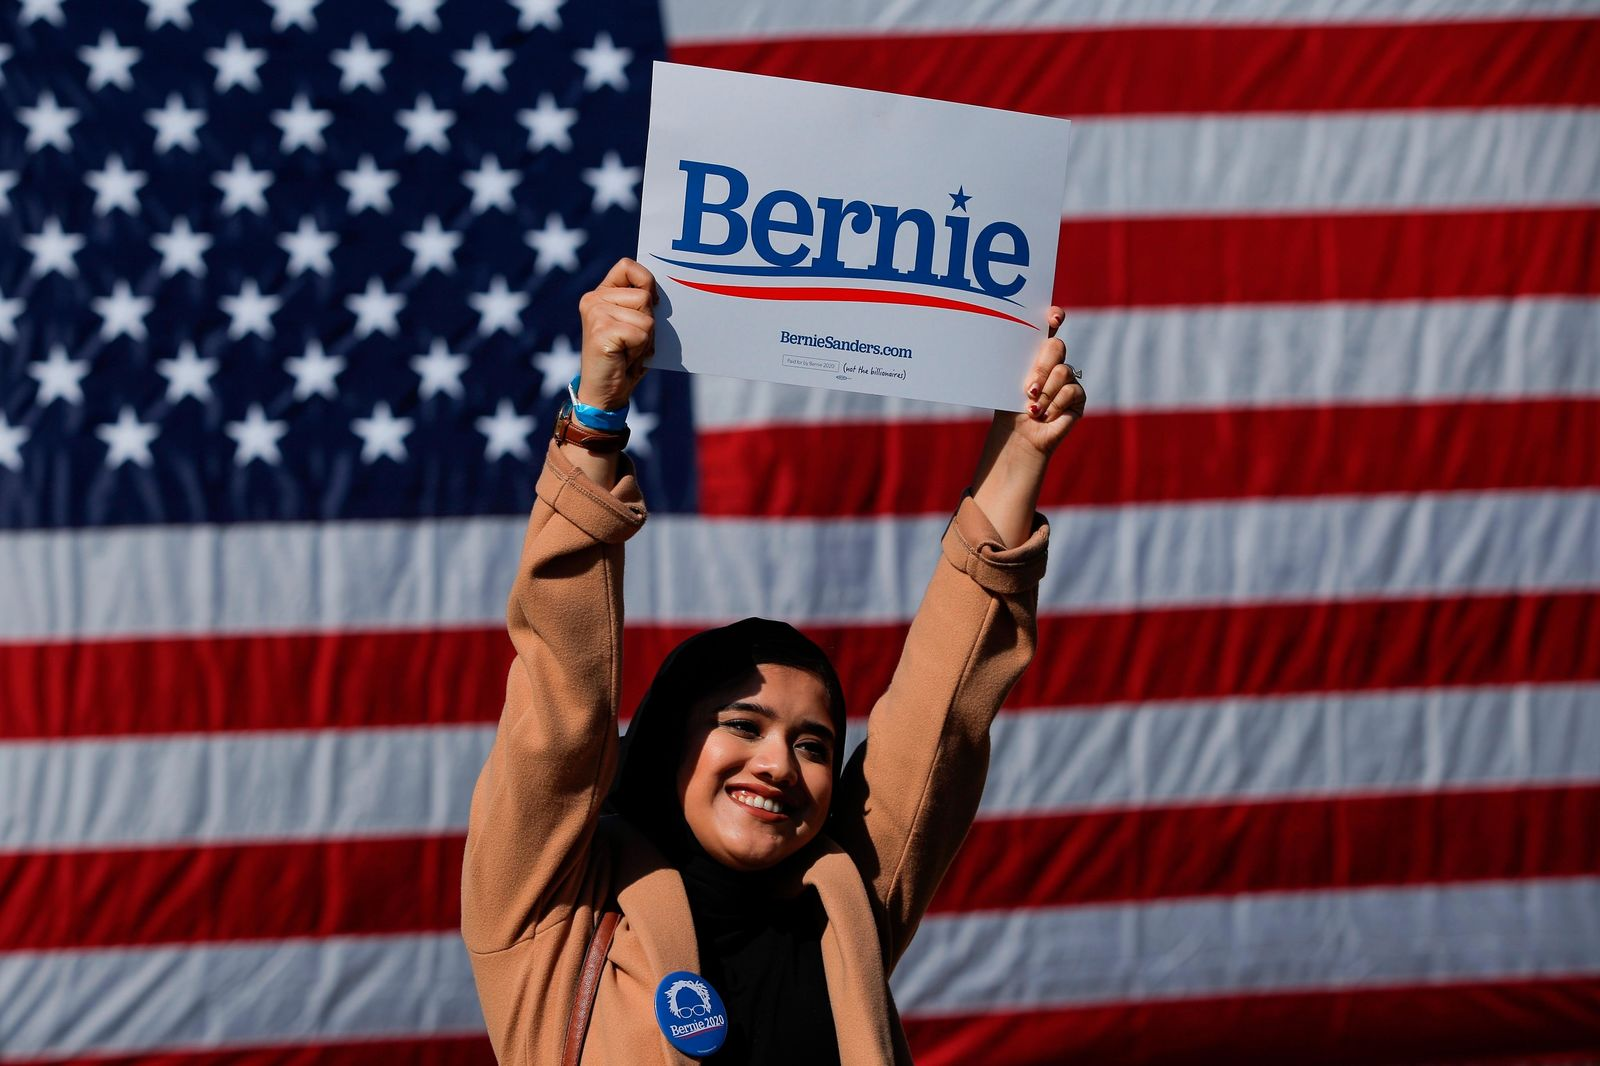 A woman attends a rally for Democratic presidential candidate Sen. Bernie Sanders, I-Vt., on Saturday, Oct. 19, 2019 in New York. (AP Photo/Eduardo Munoz Alvarez)